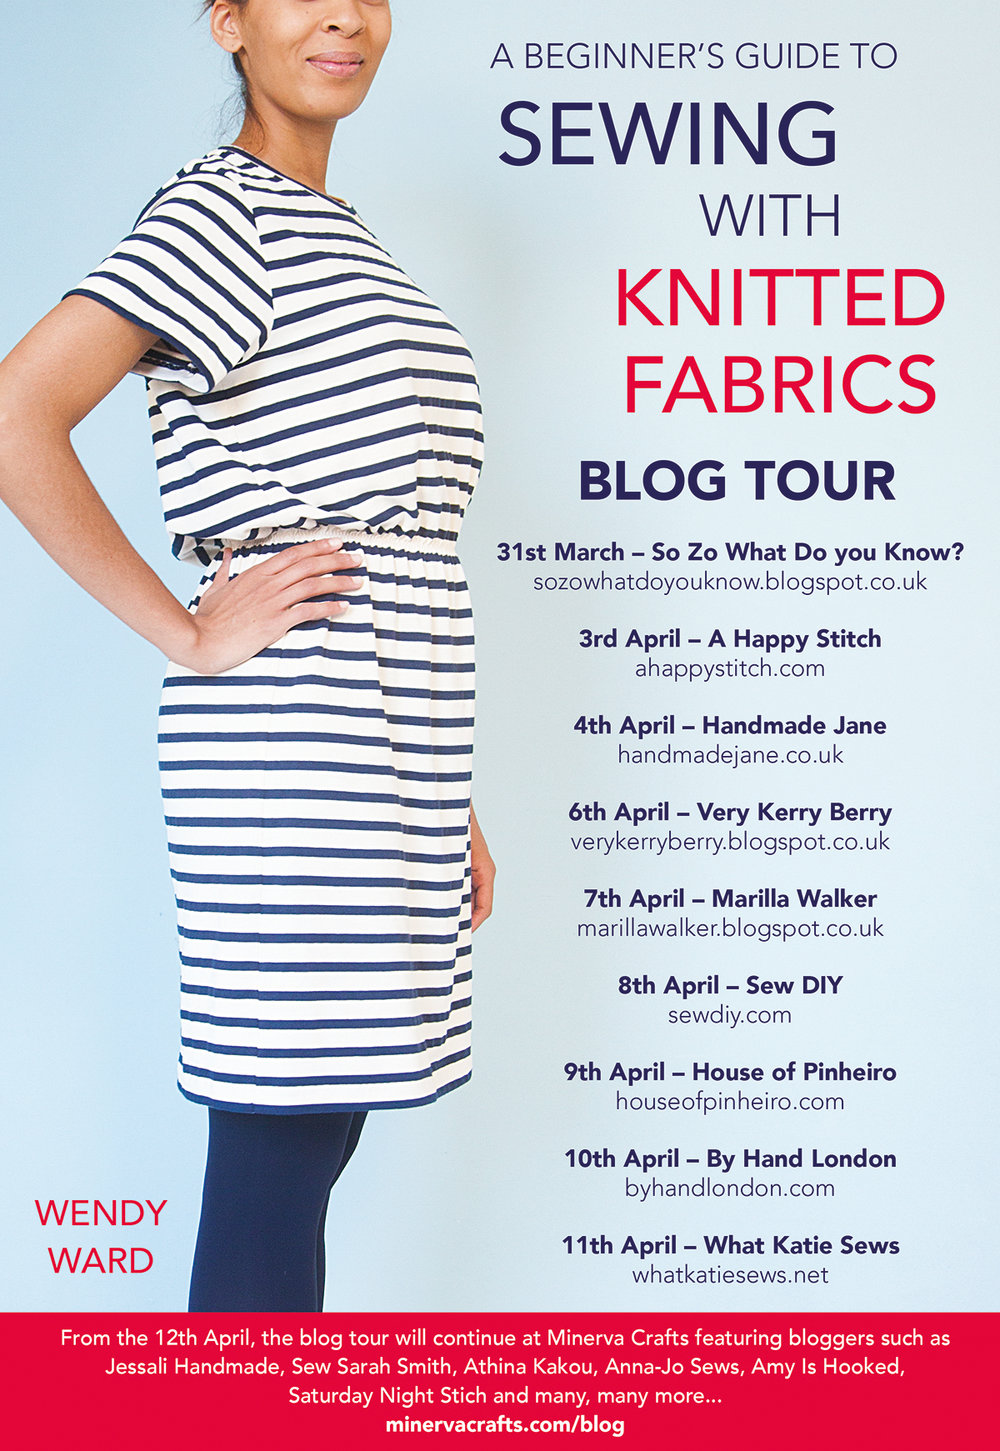 Blog Tour – A Beginner's Guide to Sewing with Knitted Fabrics | Sew DIY